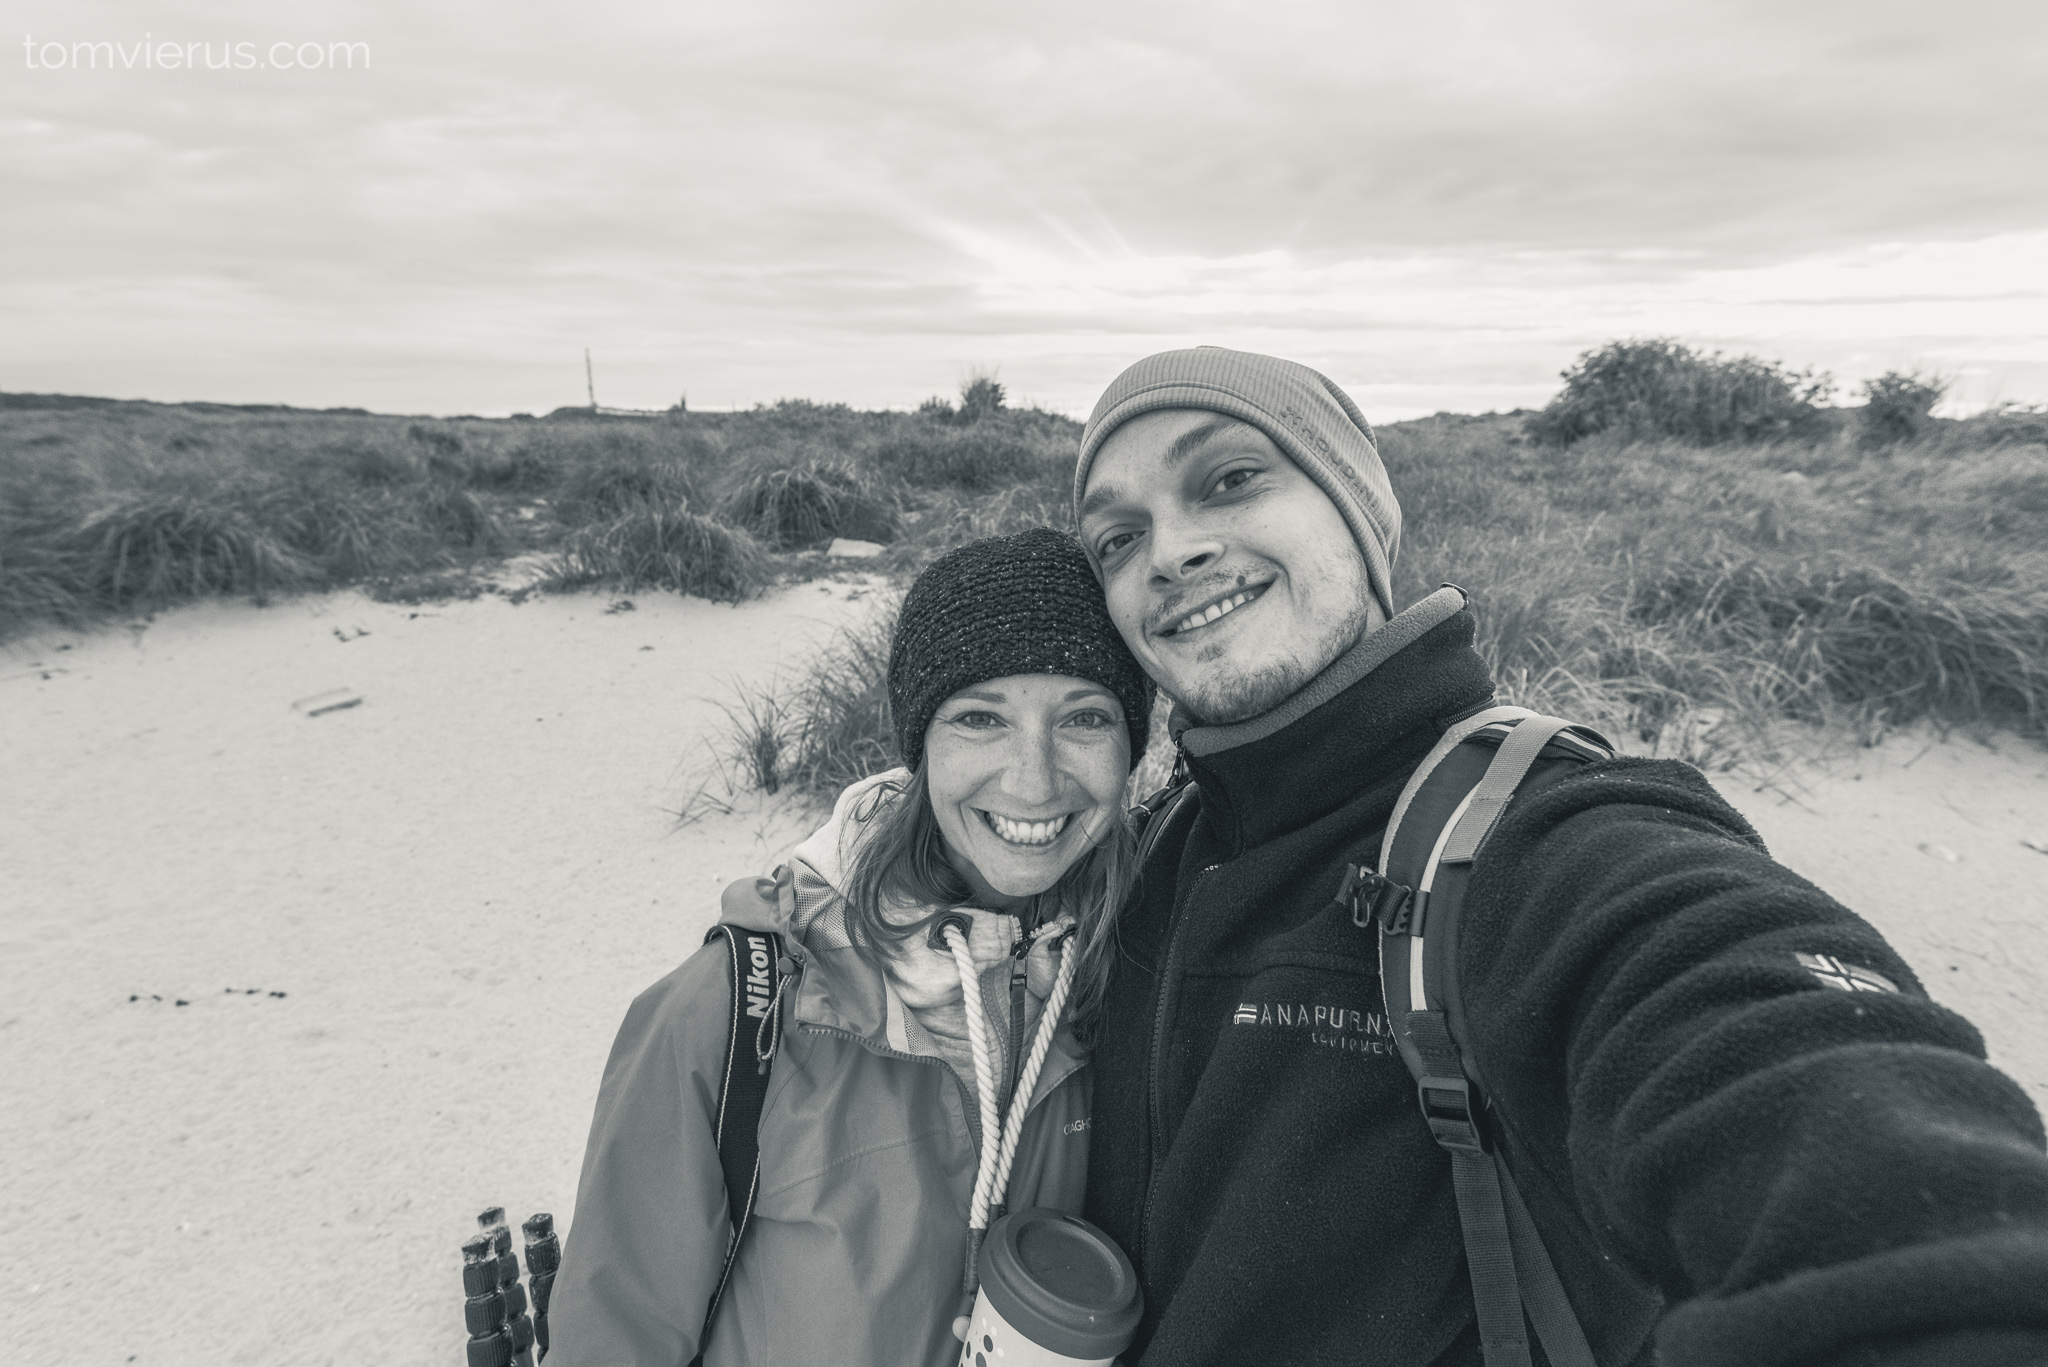 Helgoland, the dune, camping, holiday, travel